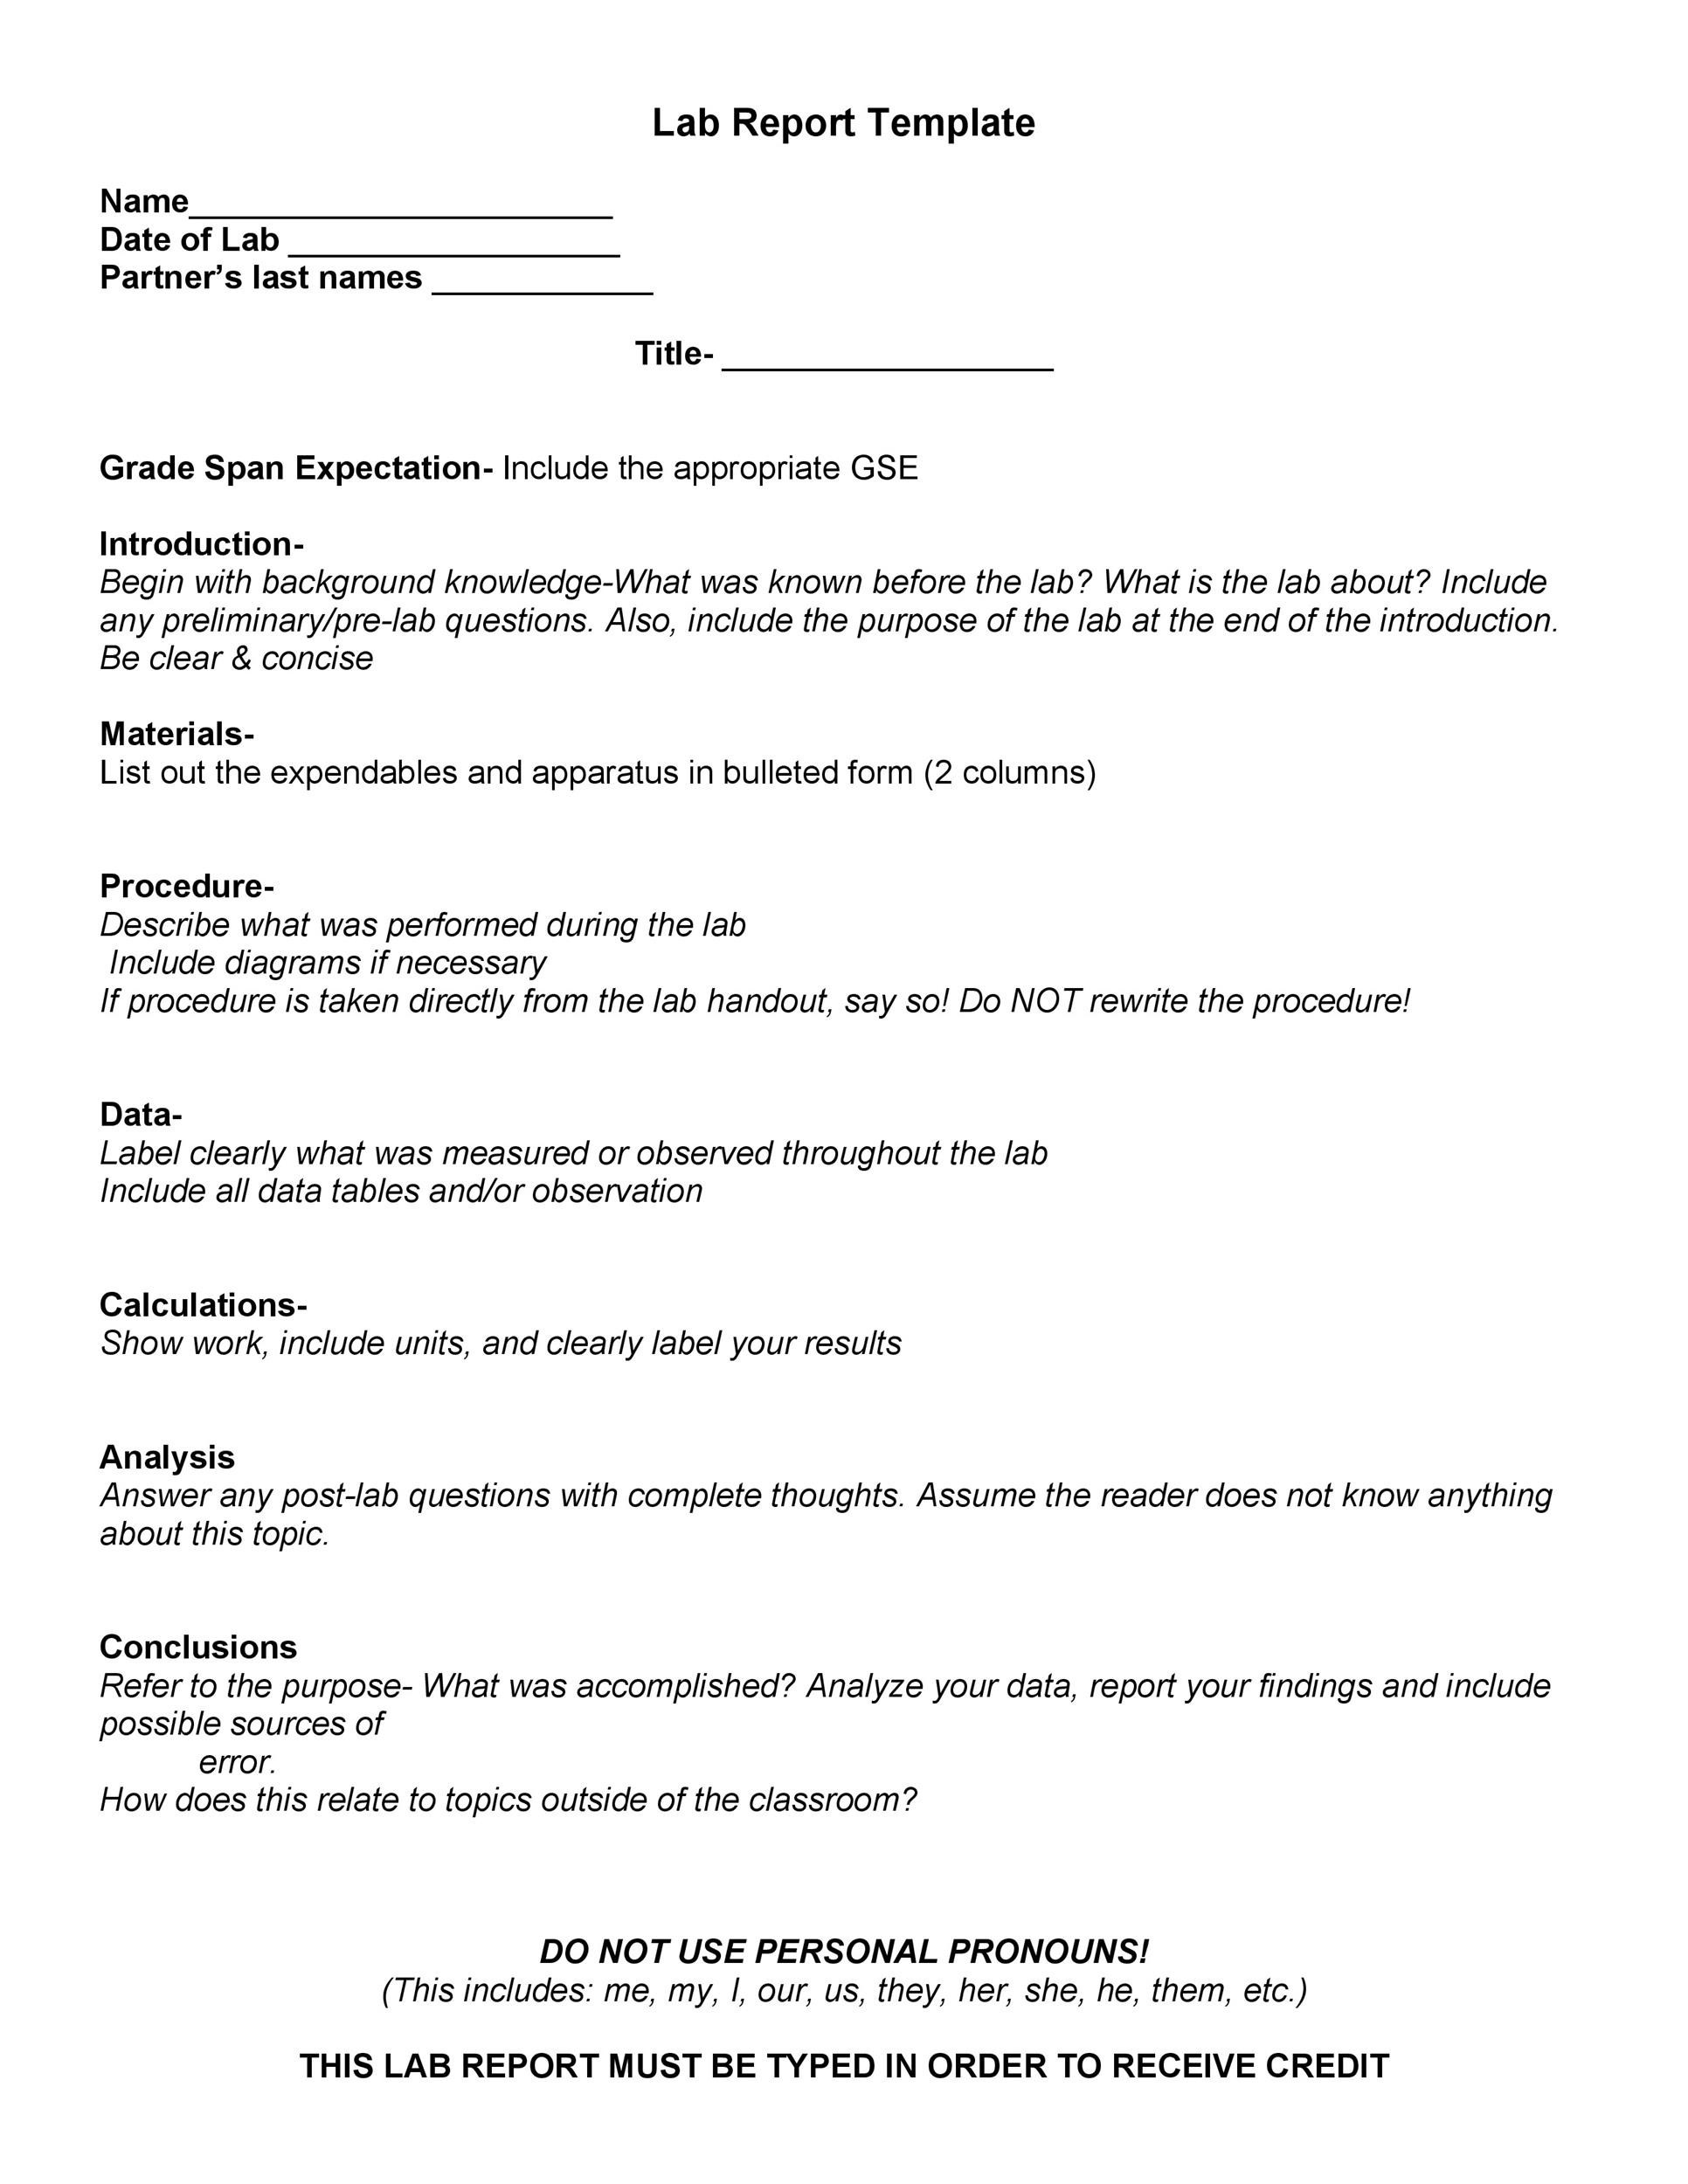 Free lab report template 07